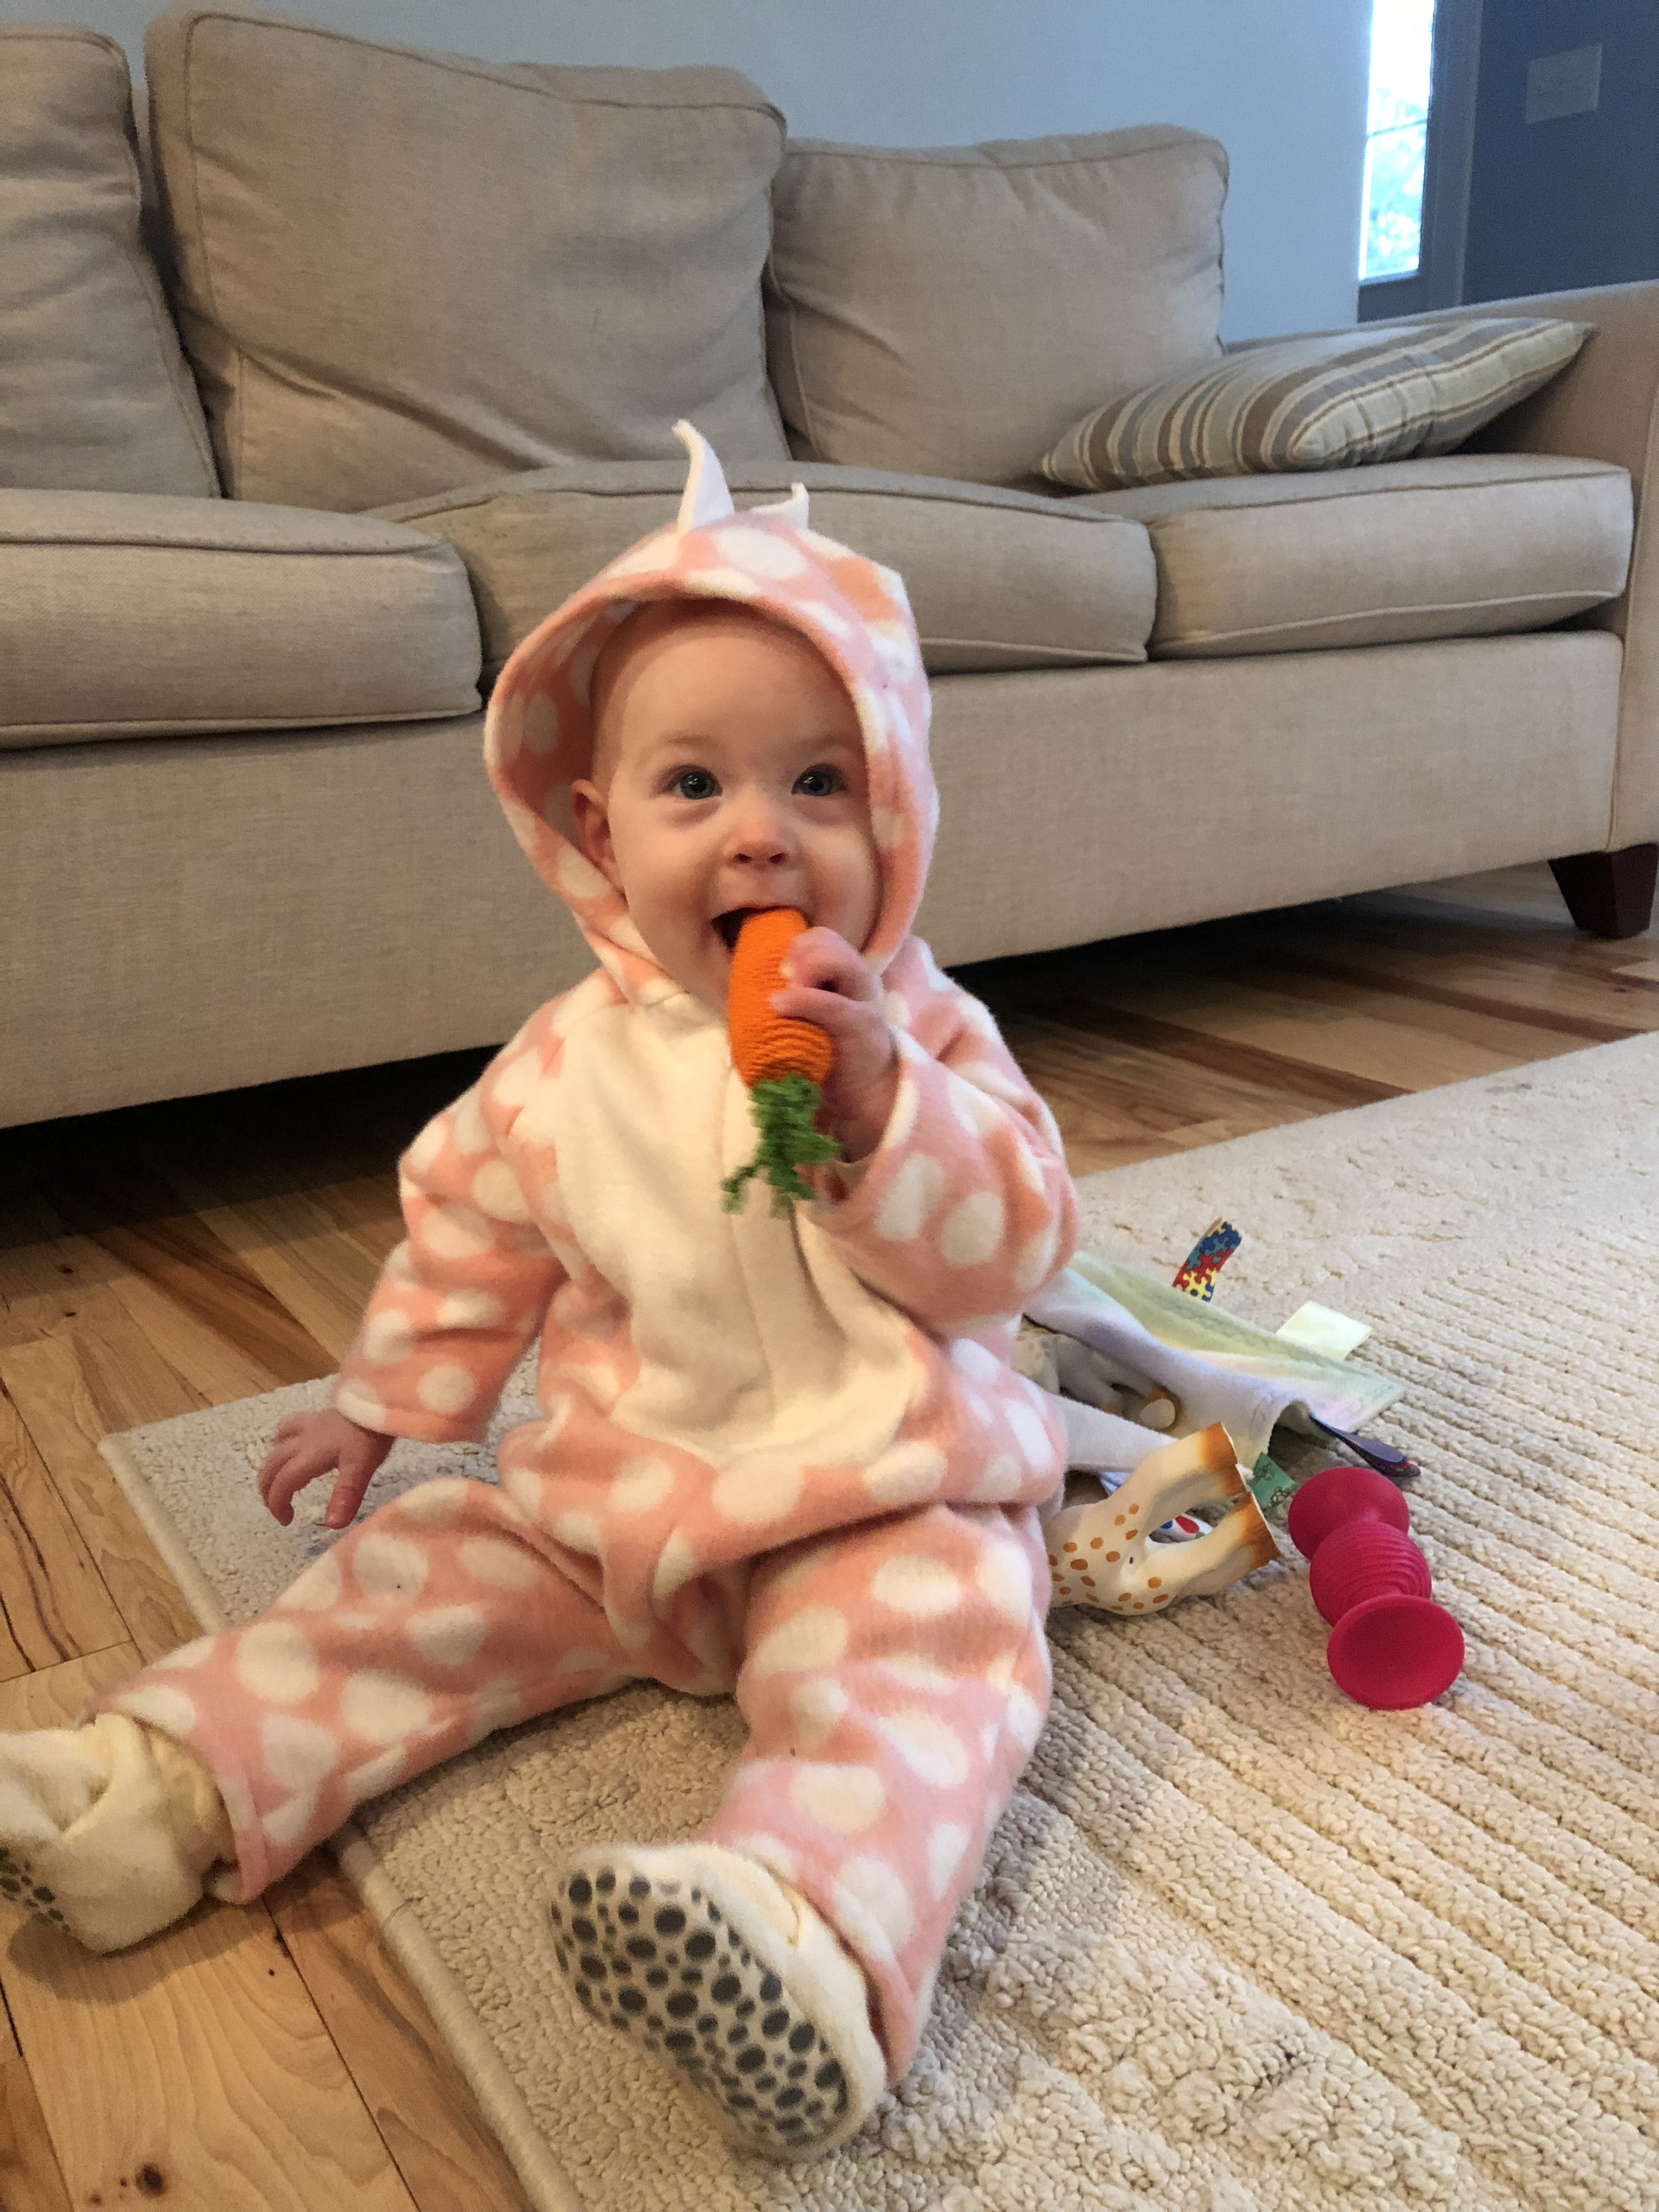 Here's an unrelated blurry picture of her eating a crocheted carrot, because it's cute.